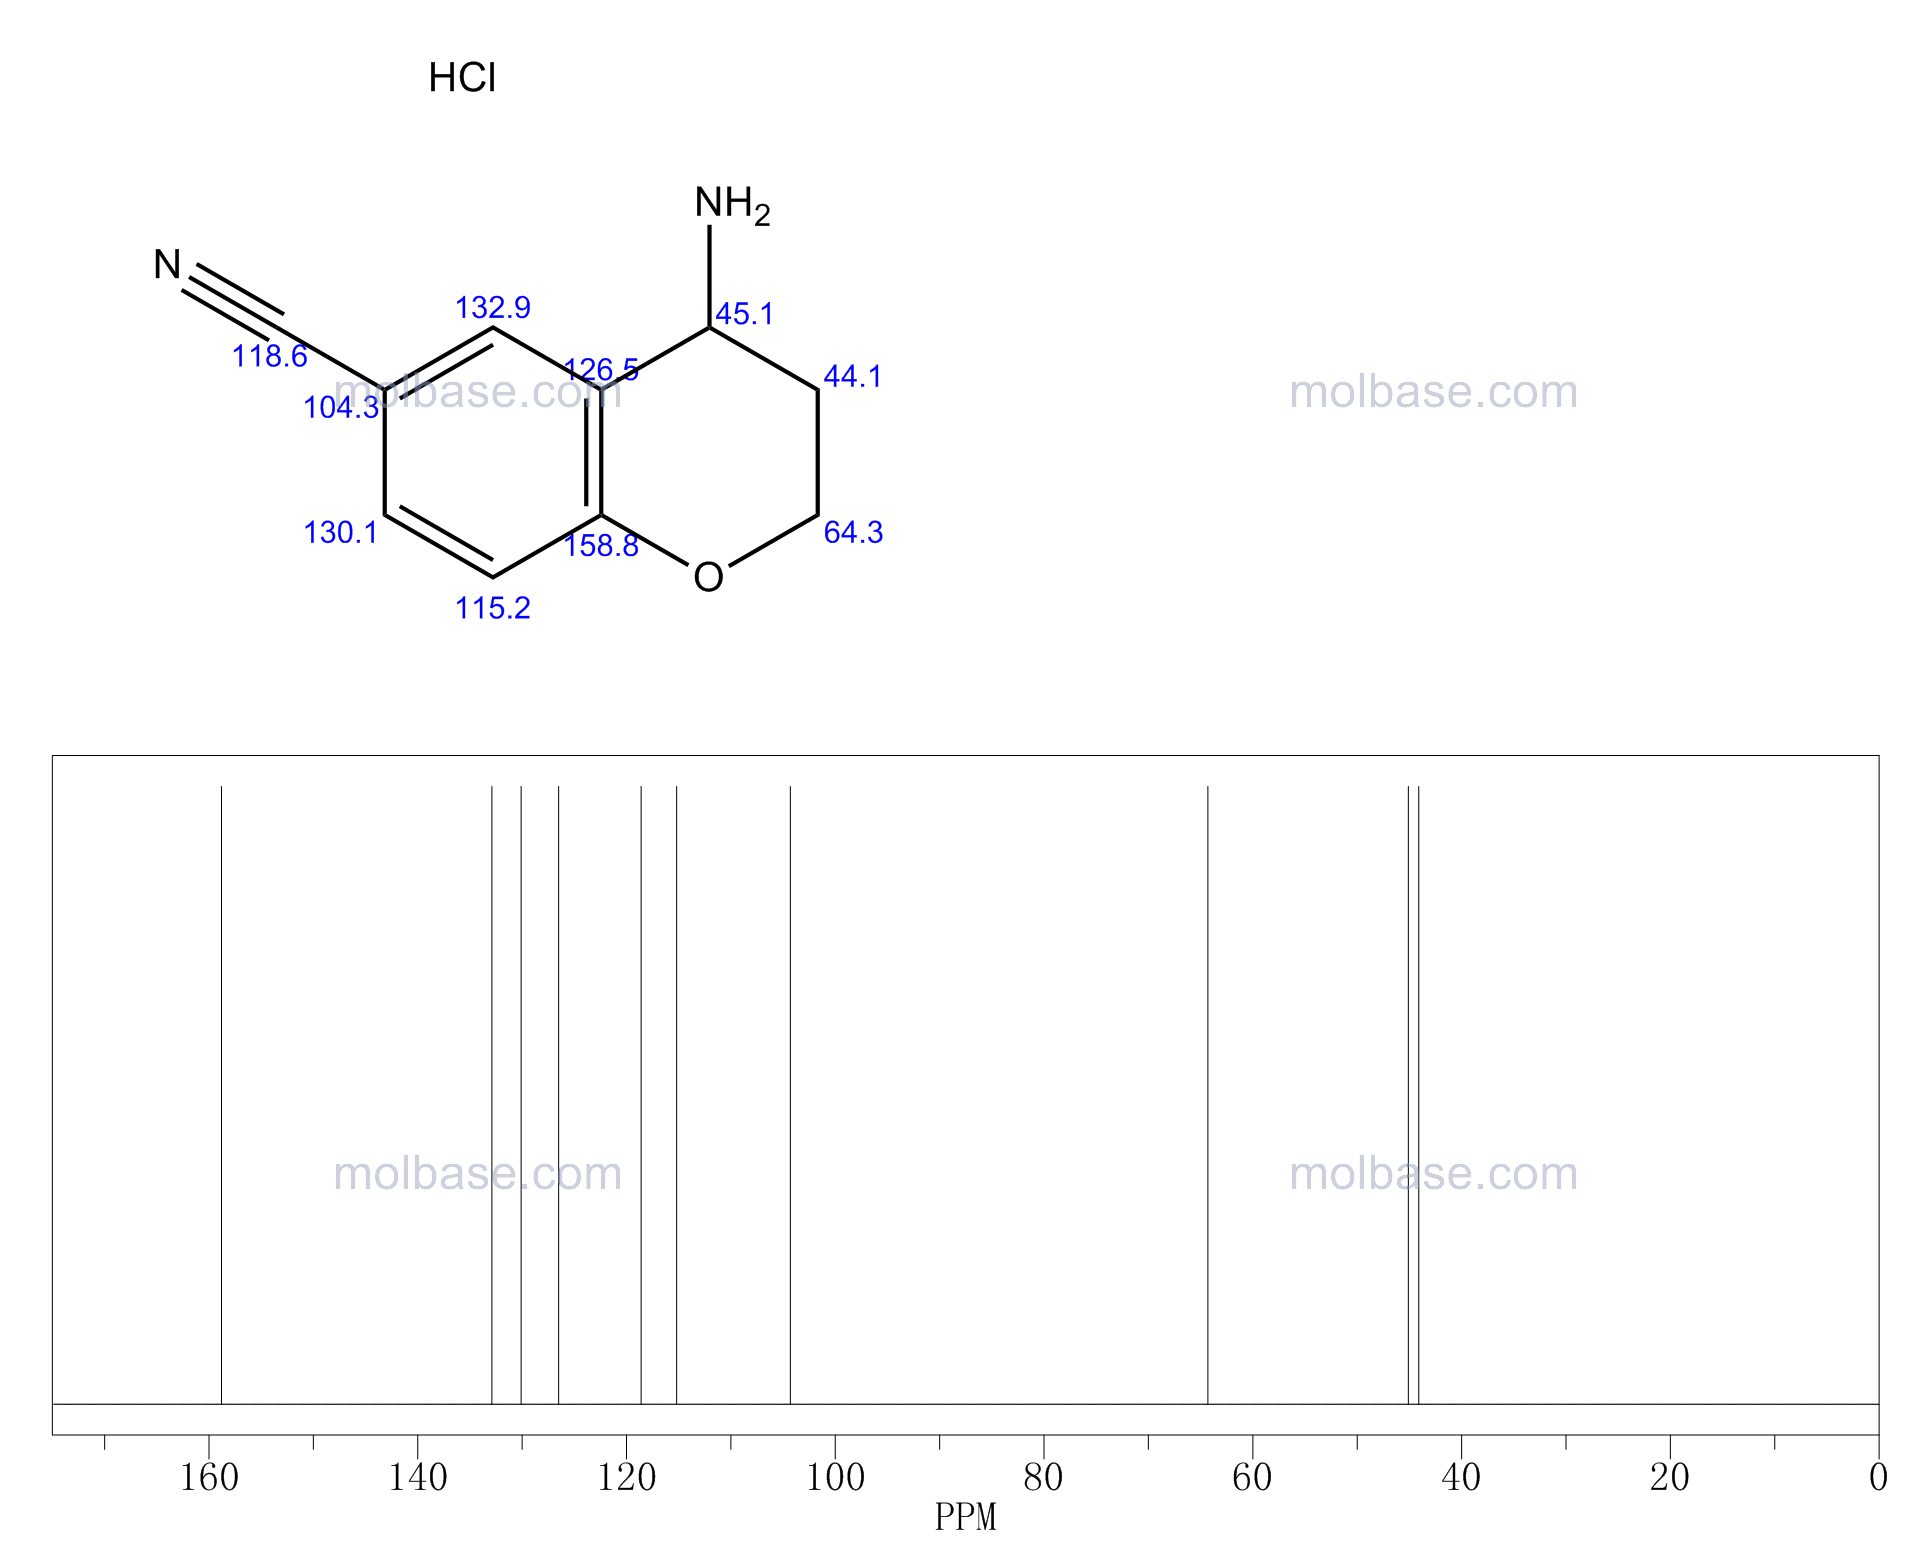 4-amino-3,4-dihydro-2H-chromene-6-carbonitrile NMR spectra analysis, Chemical CAS NO. 911825-88-2 NMR spectral analysis, 4-amino-3,4-dihydro-2H-chromene-6-carbonitrile C-NMR spectrum